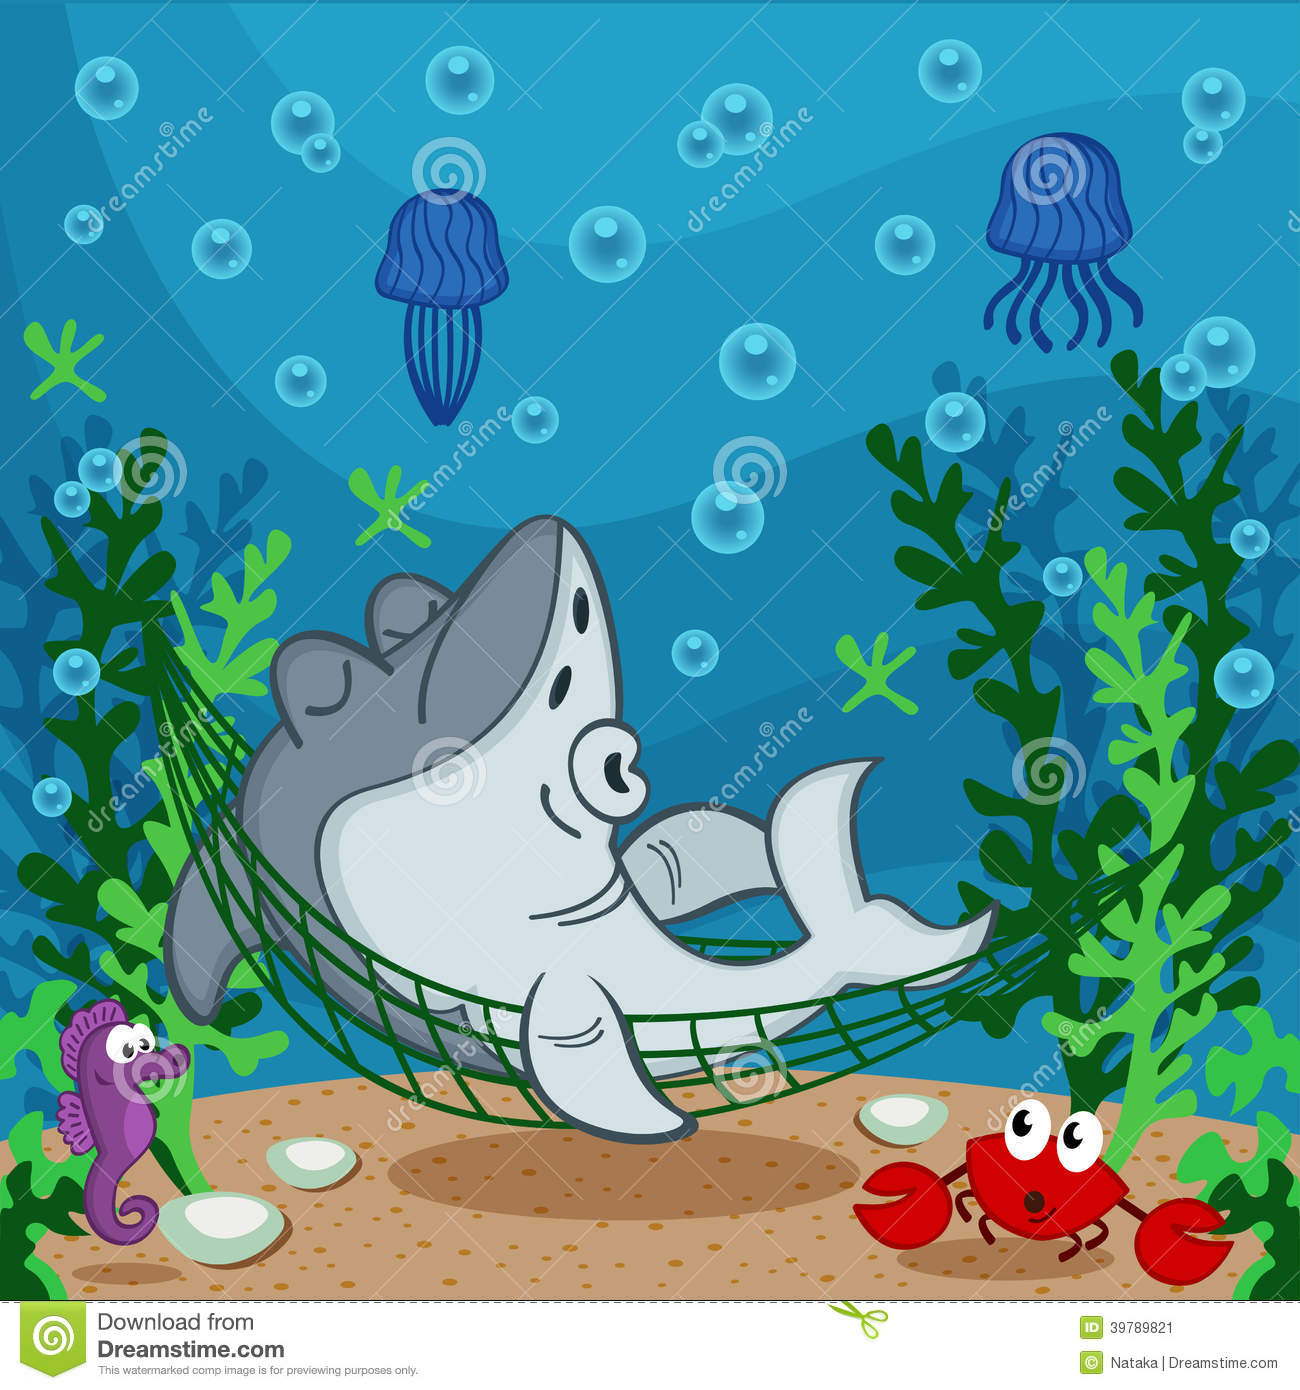 sea bed beach vector - photo #25